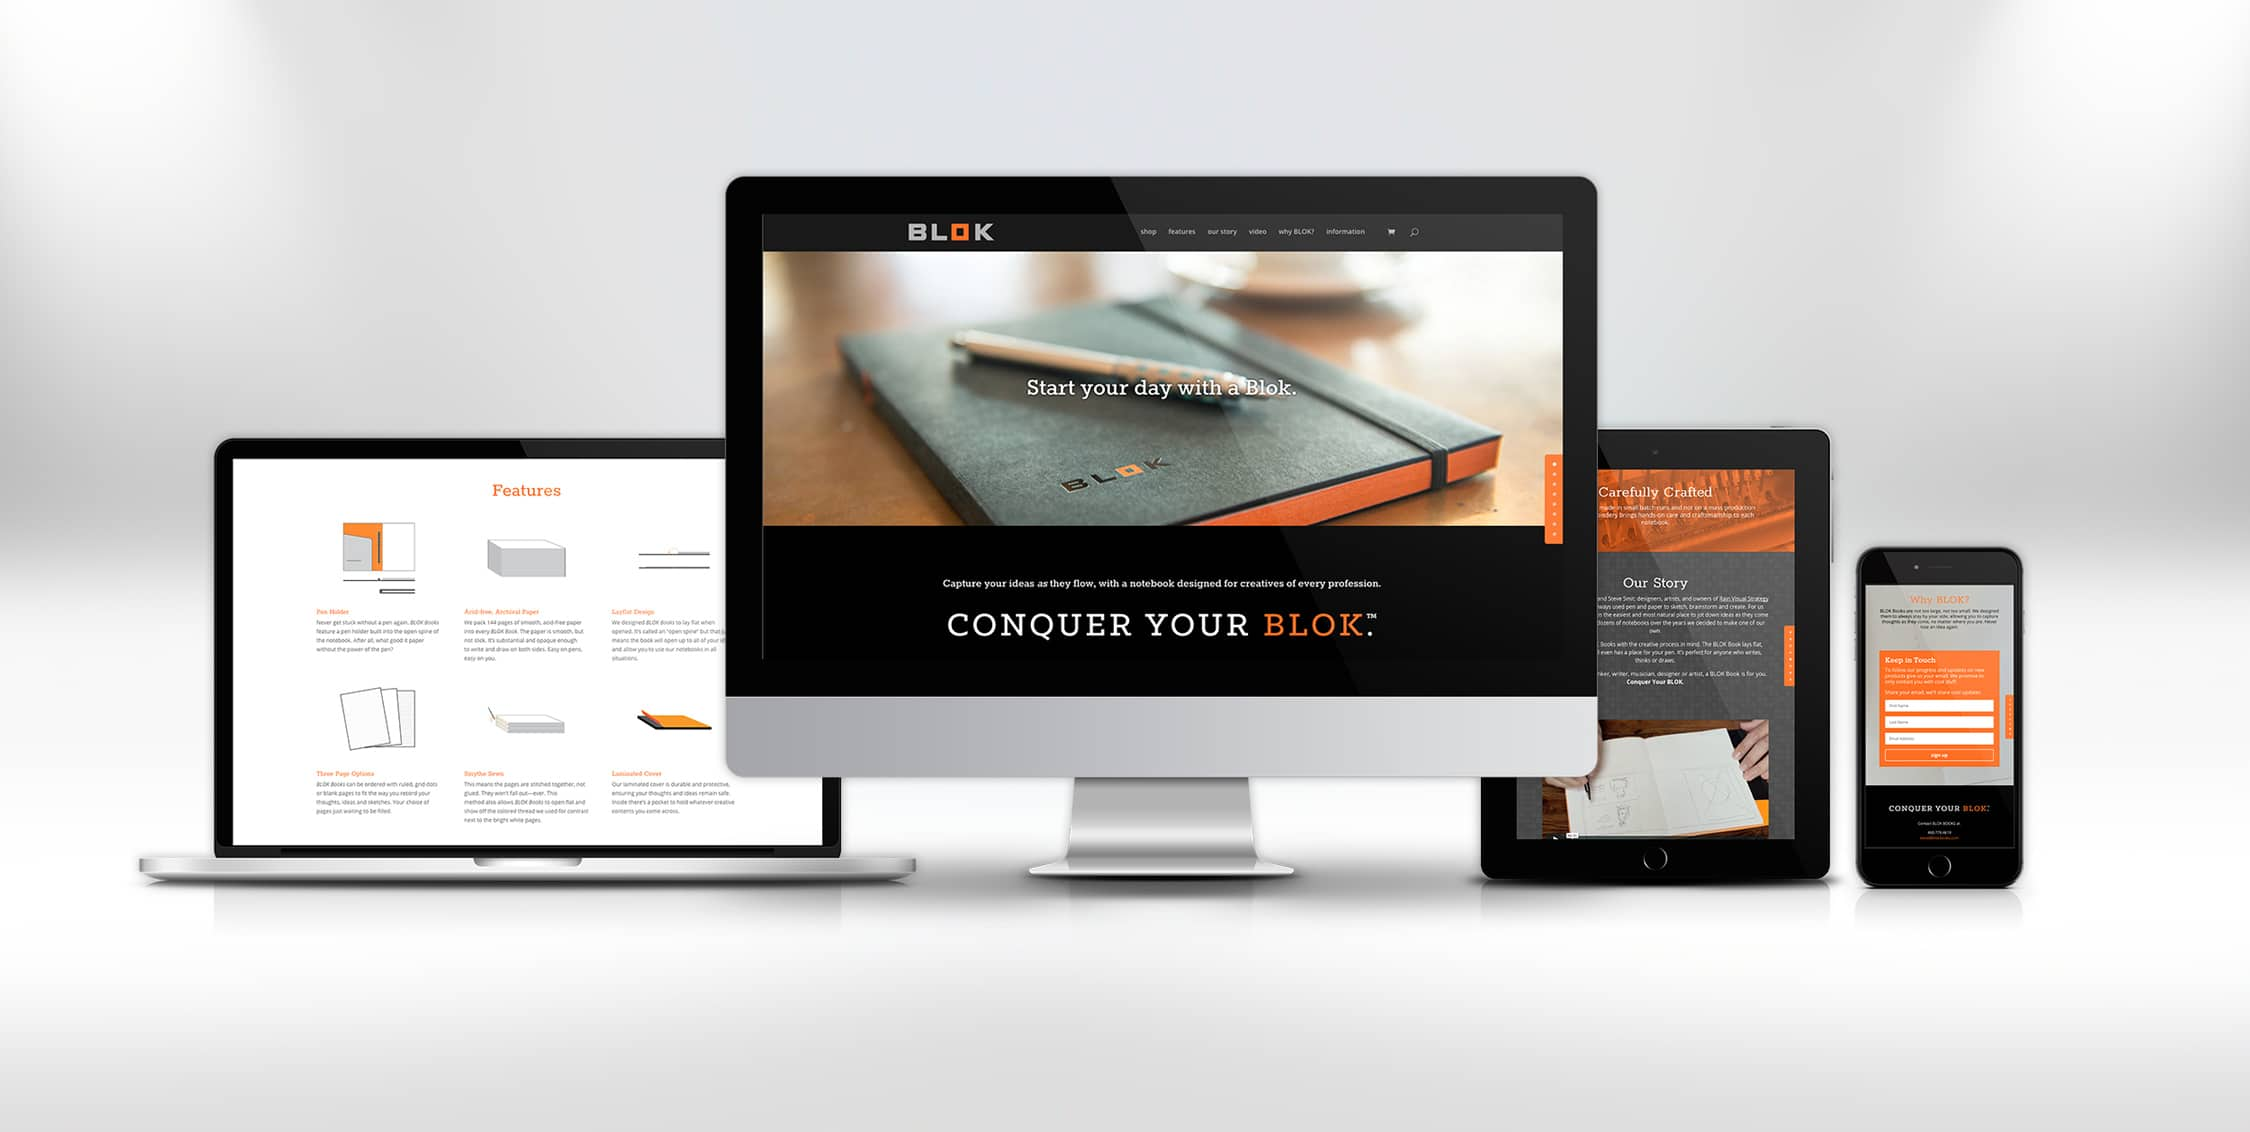 blok books website